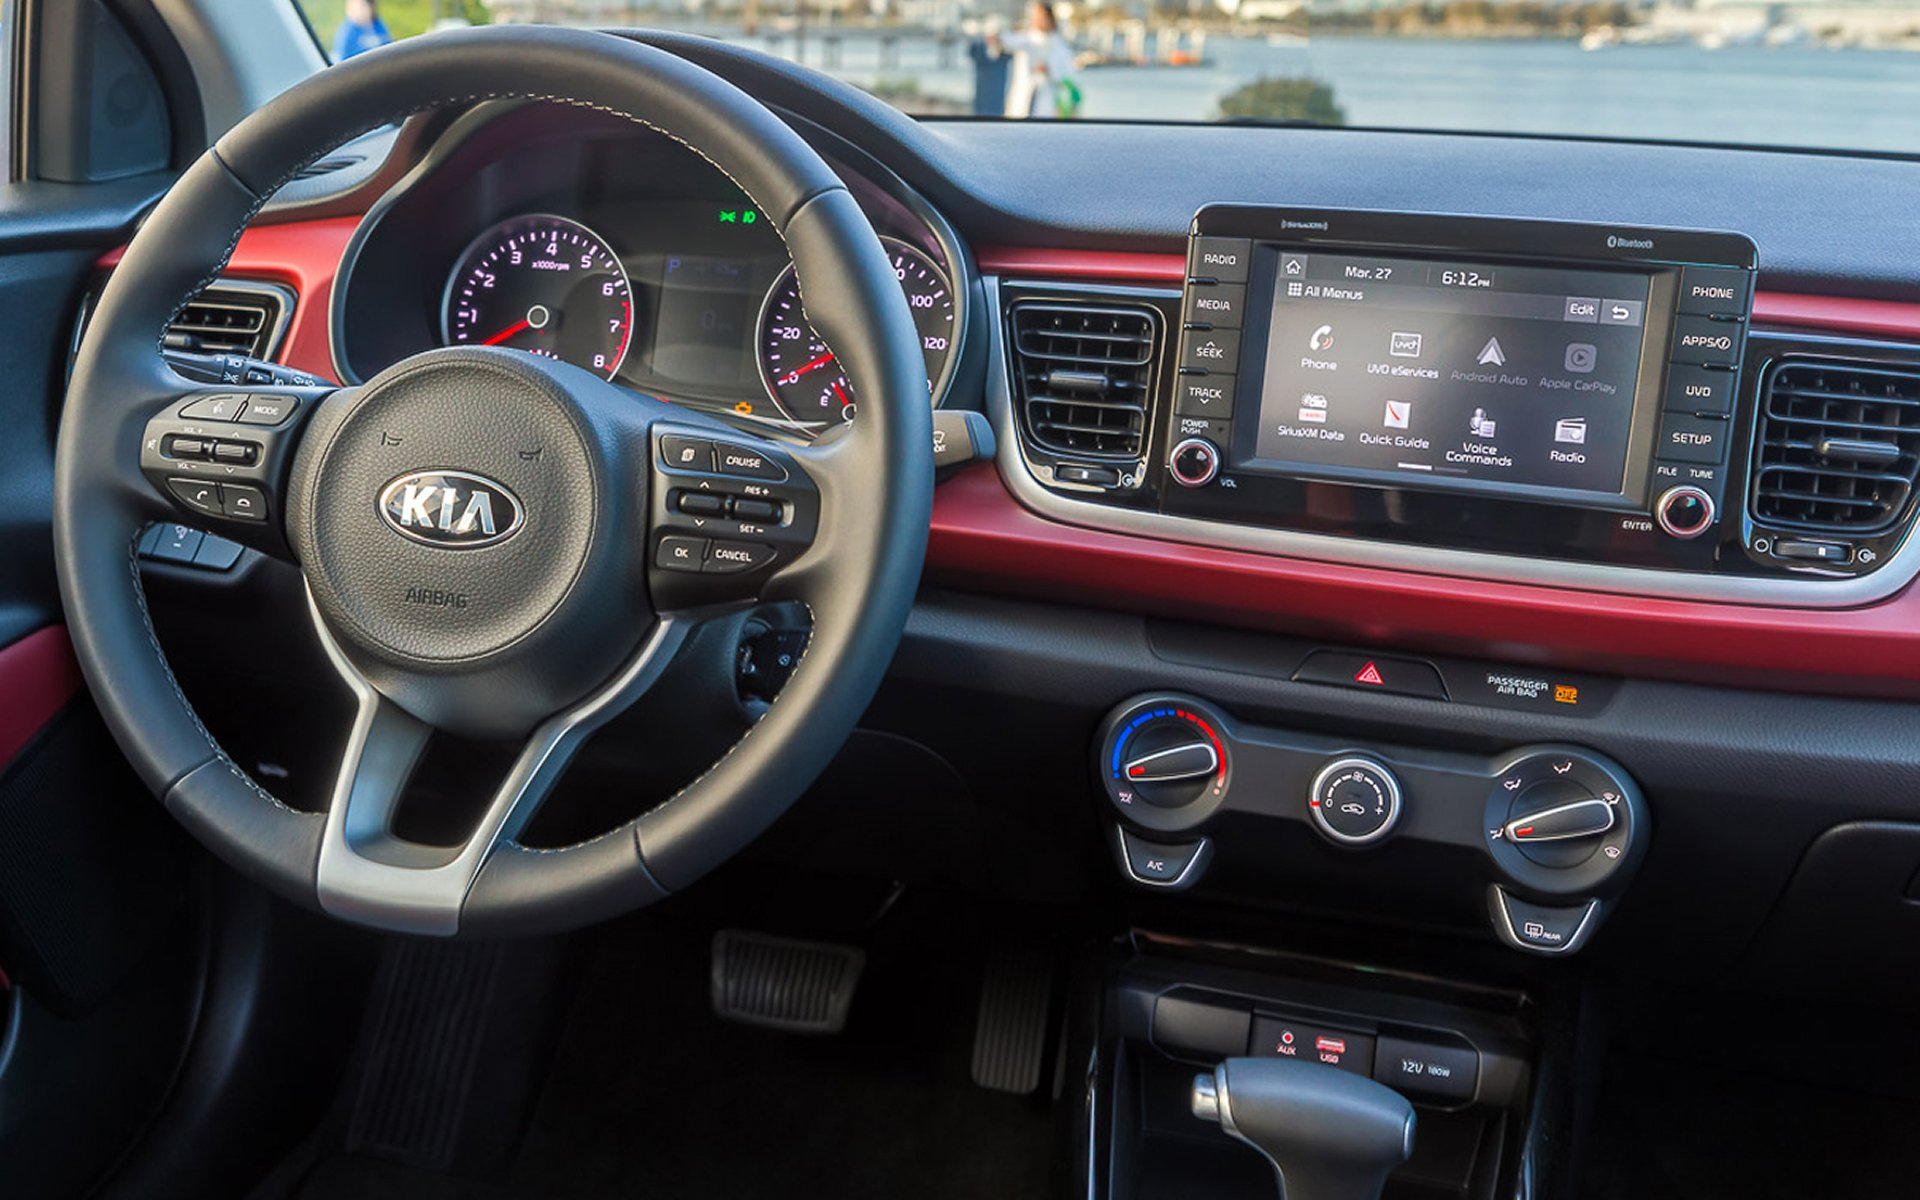 Michigan - 2018 KIA Rio's Interior